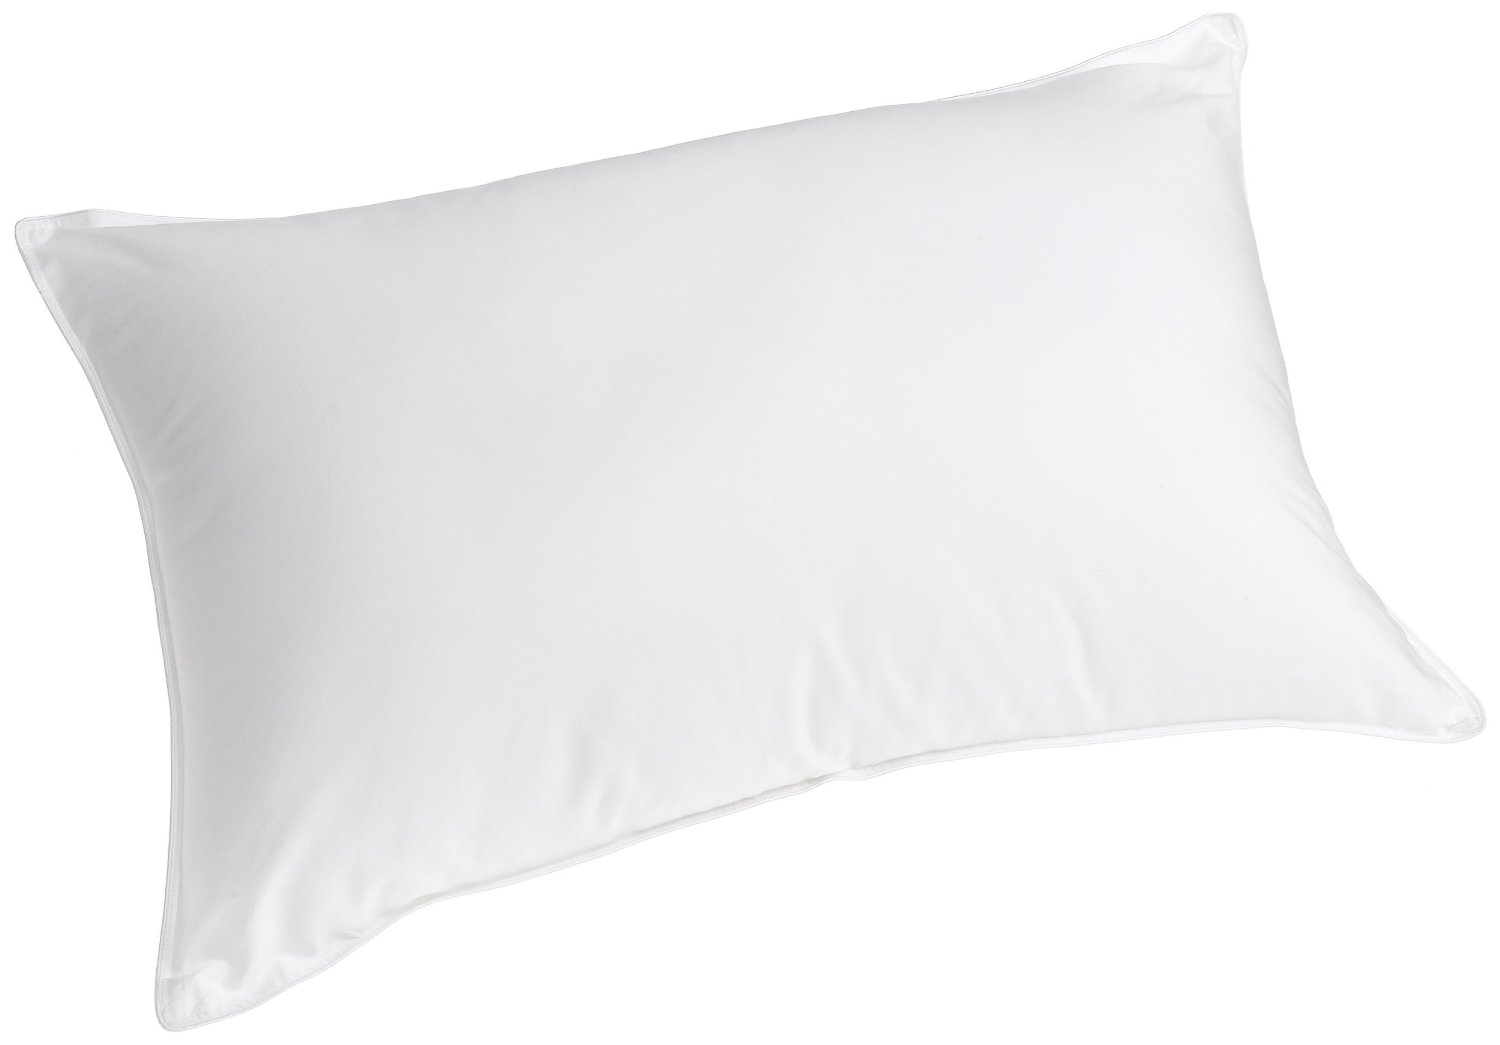 Elaine Esposito's Pillow